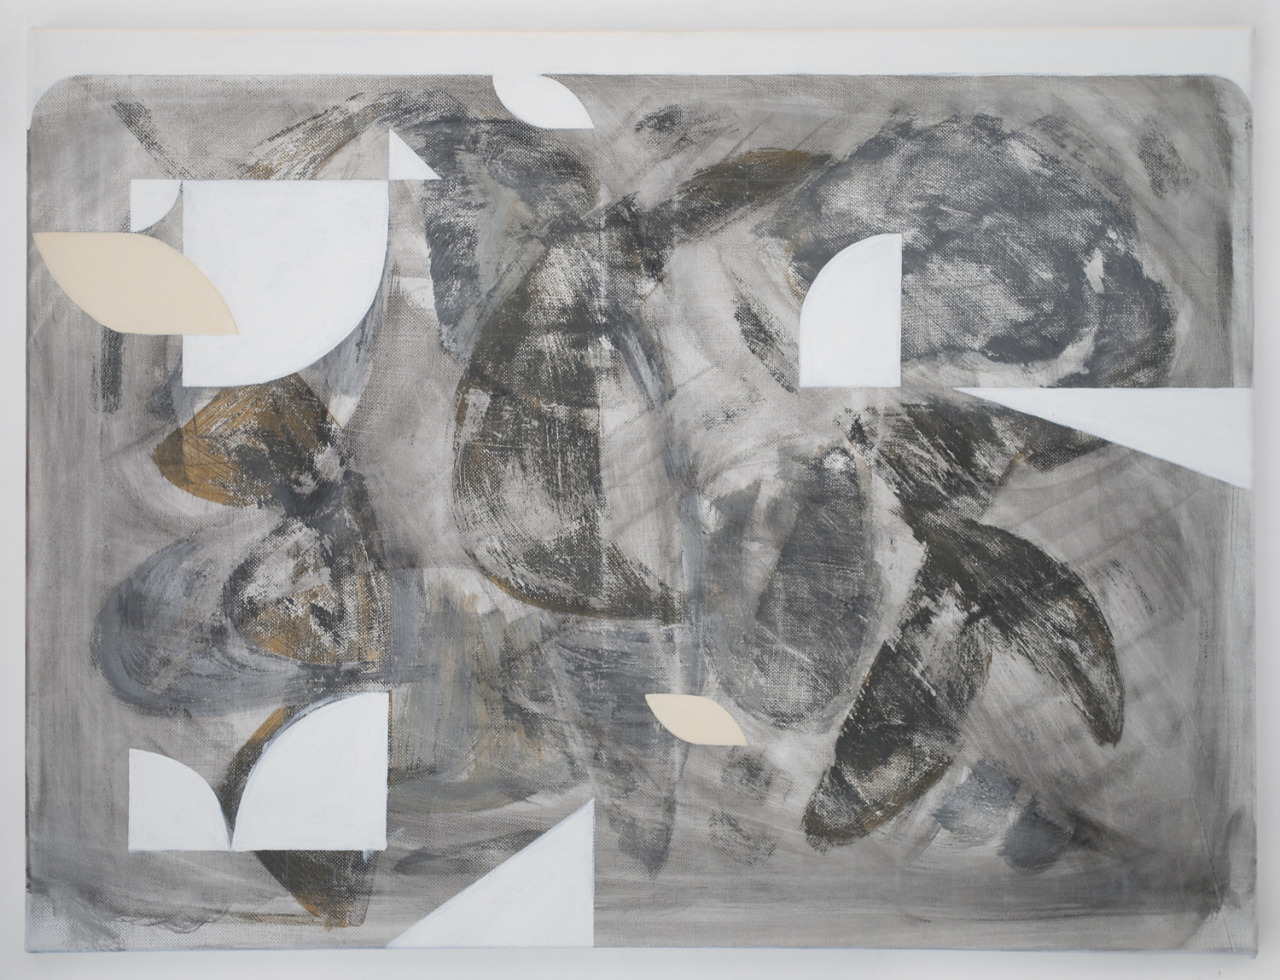 White (II), 2013. Acrylic and charcoal on canvas; 18 x 24 in.